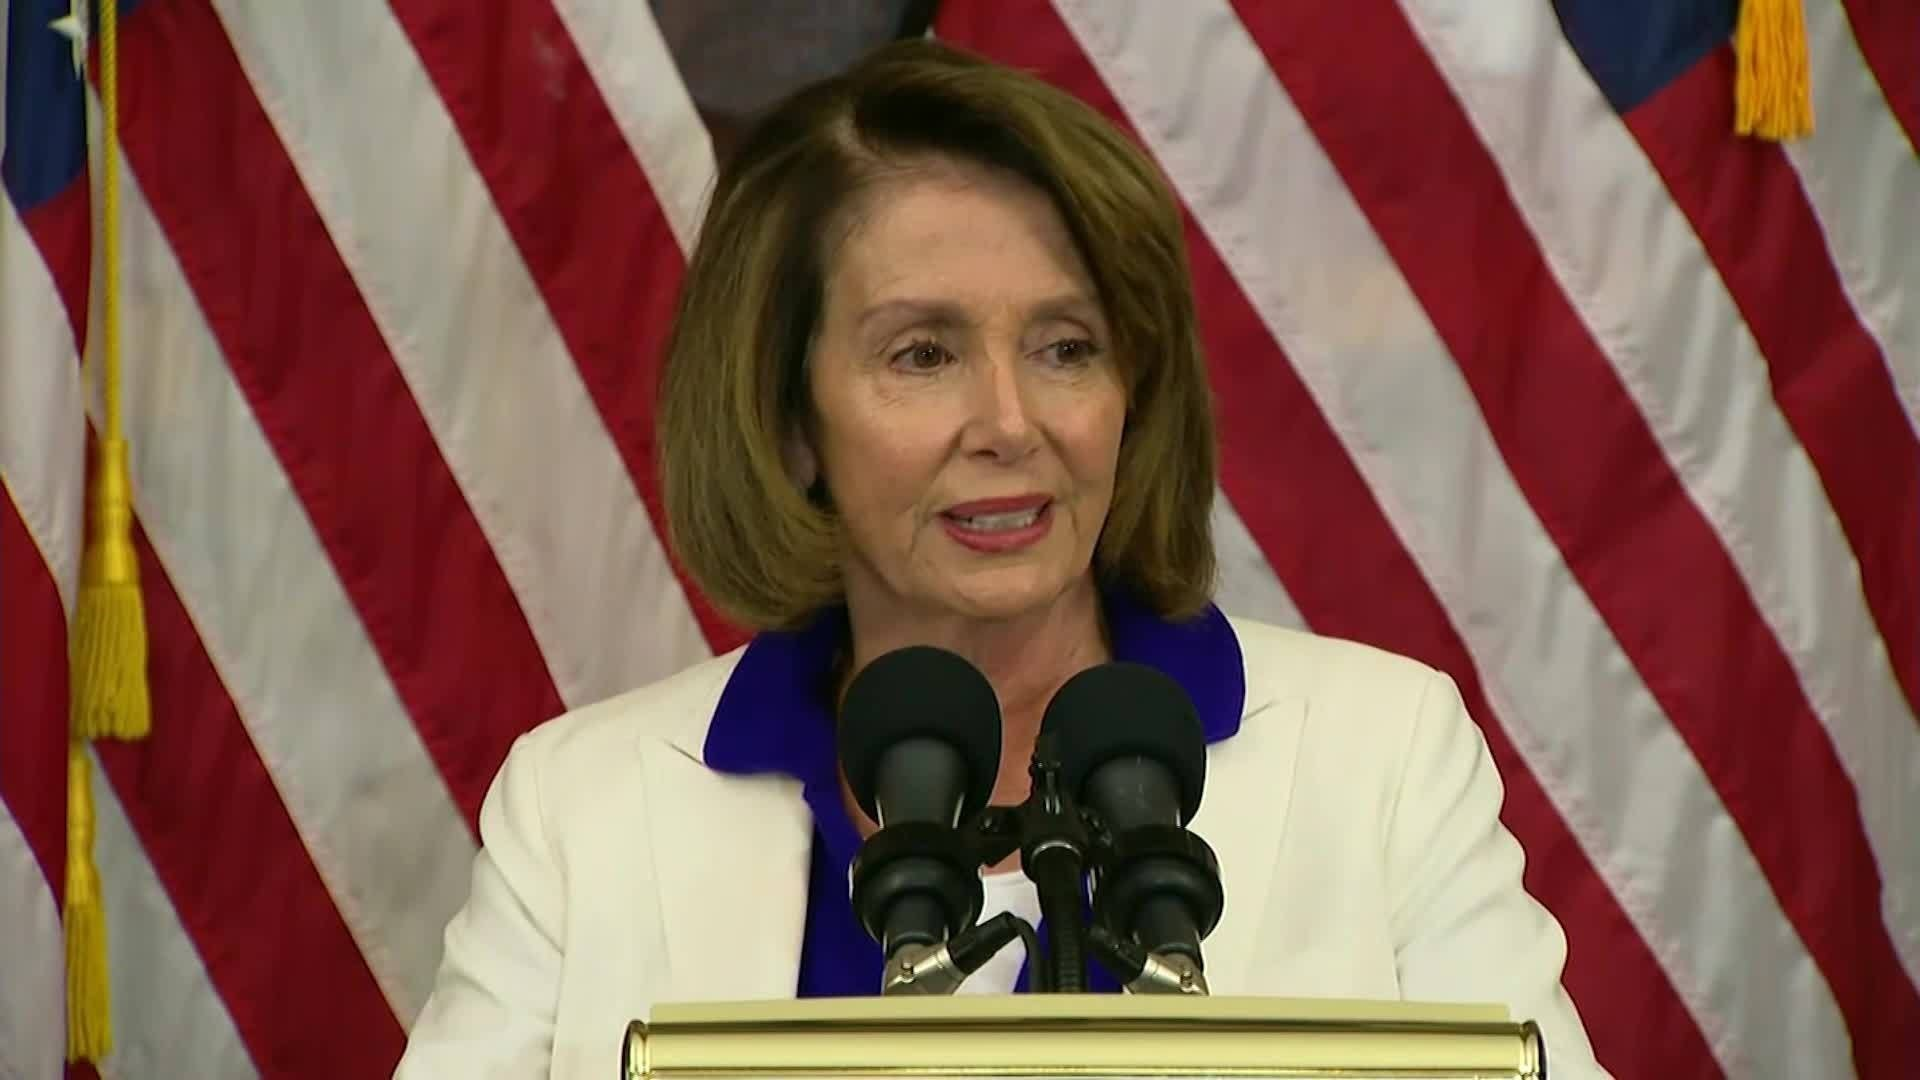 Pelosi: Conyers deserves 'due process' on misconduct charges